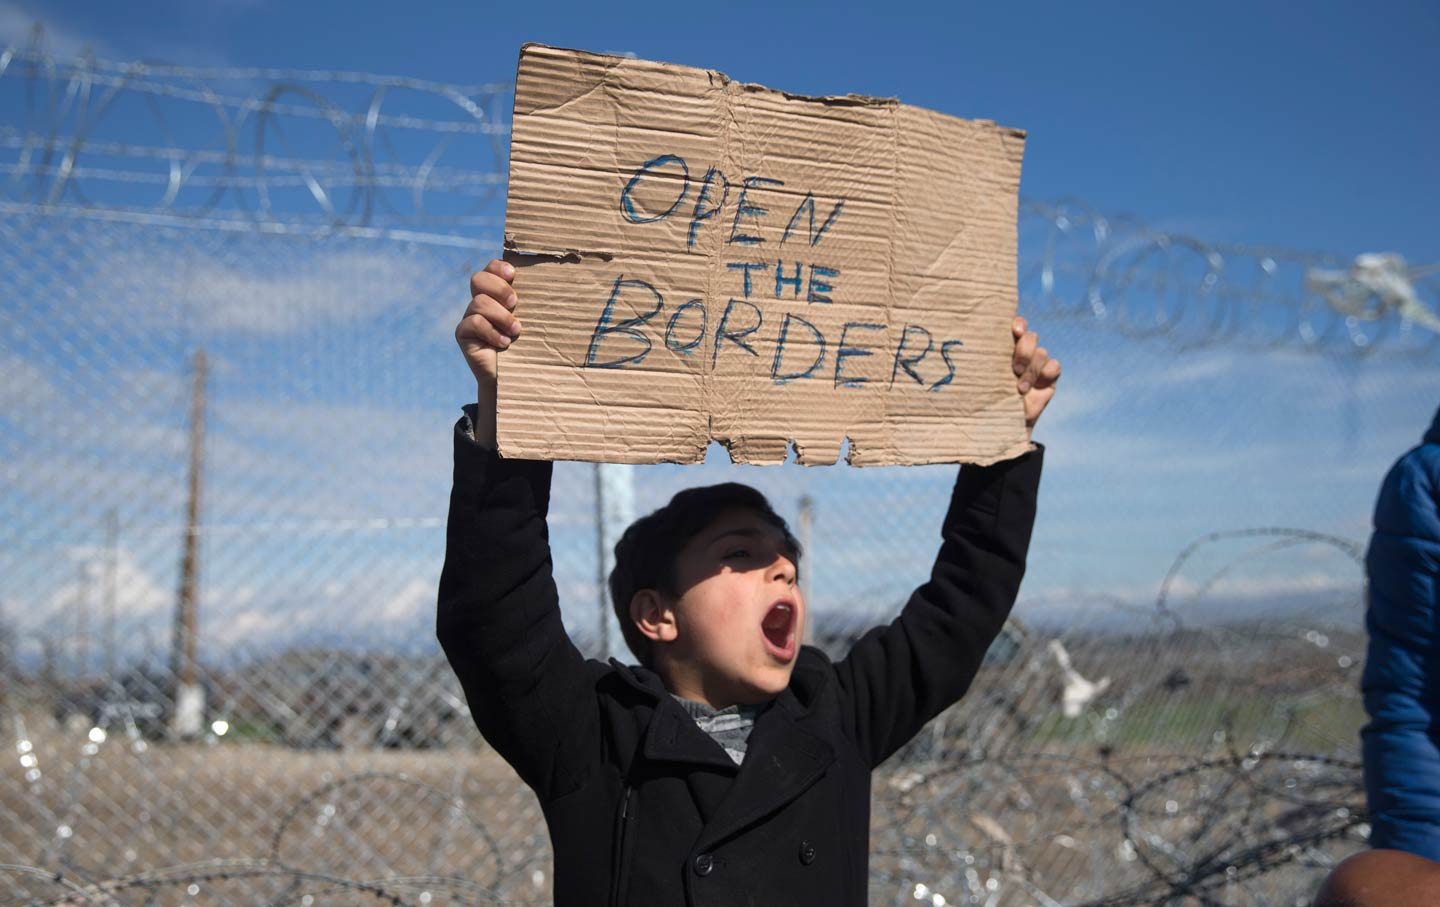 Open_borders_syrian_refugees-